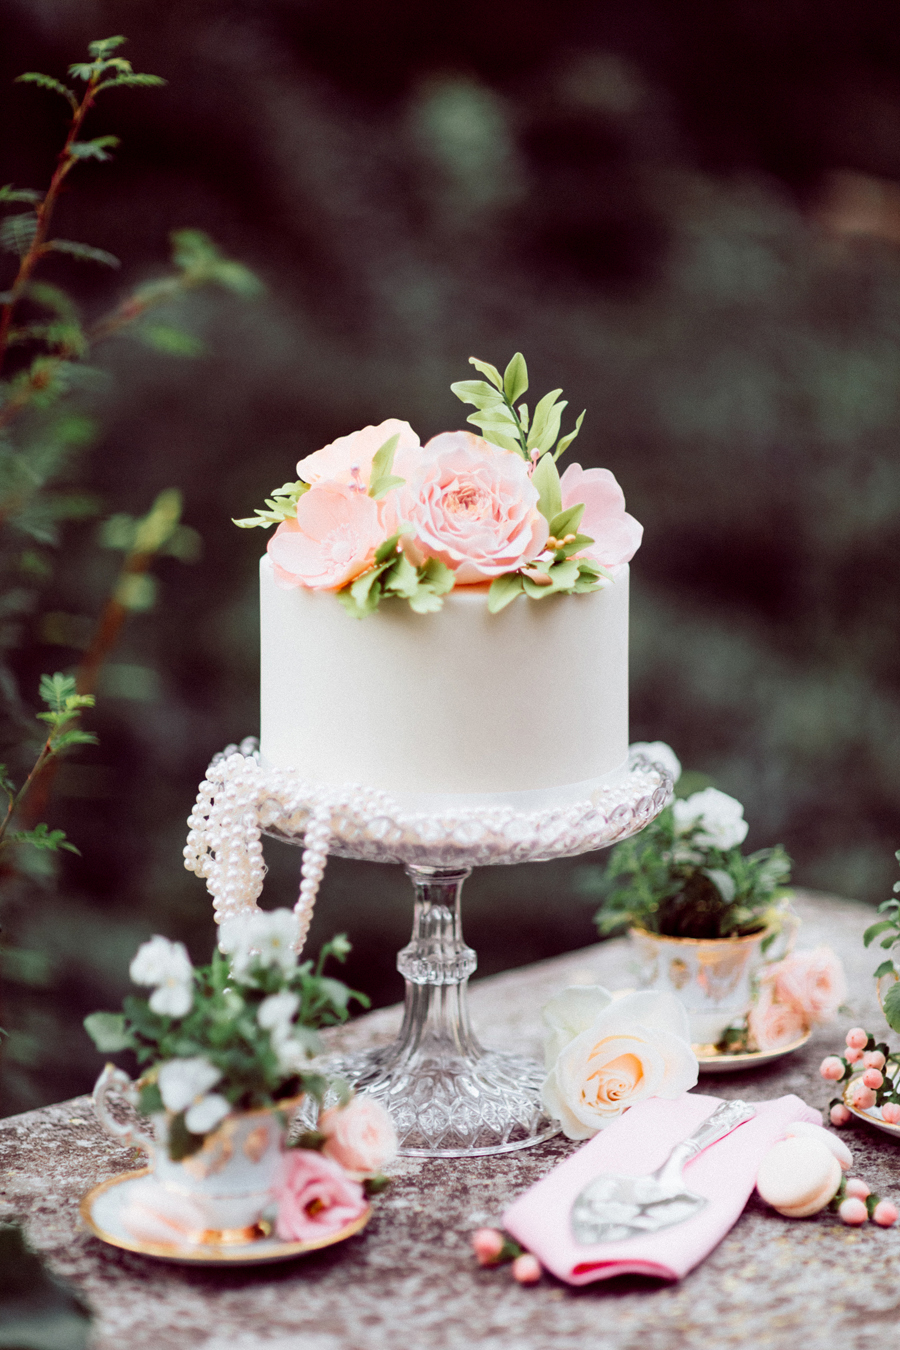 Inspired by the timeless classic, My Fair Lady, this shoot focuses on a gently sophisticated colour scheme of pale pinks, apricots and lilac.